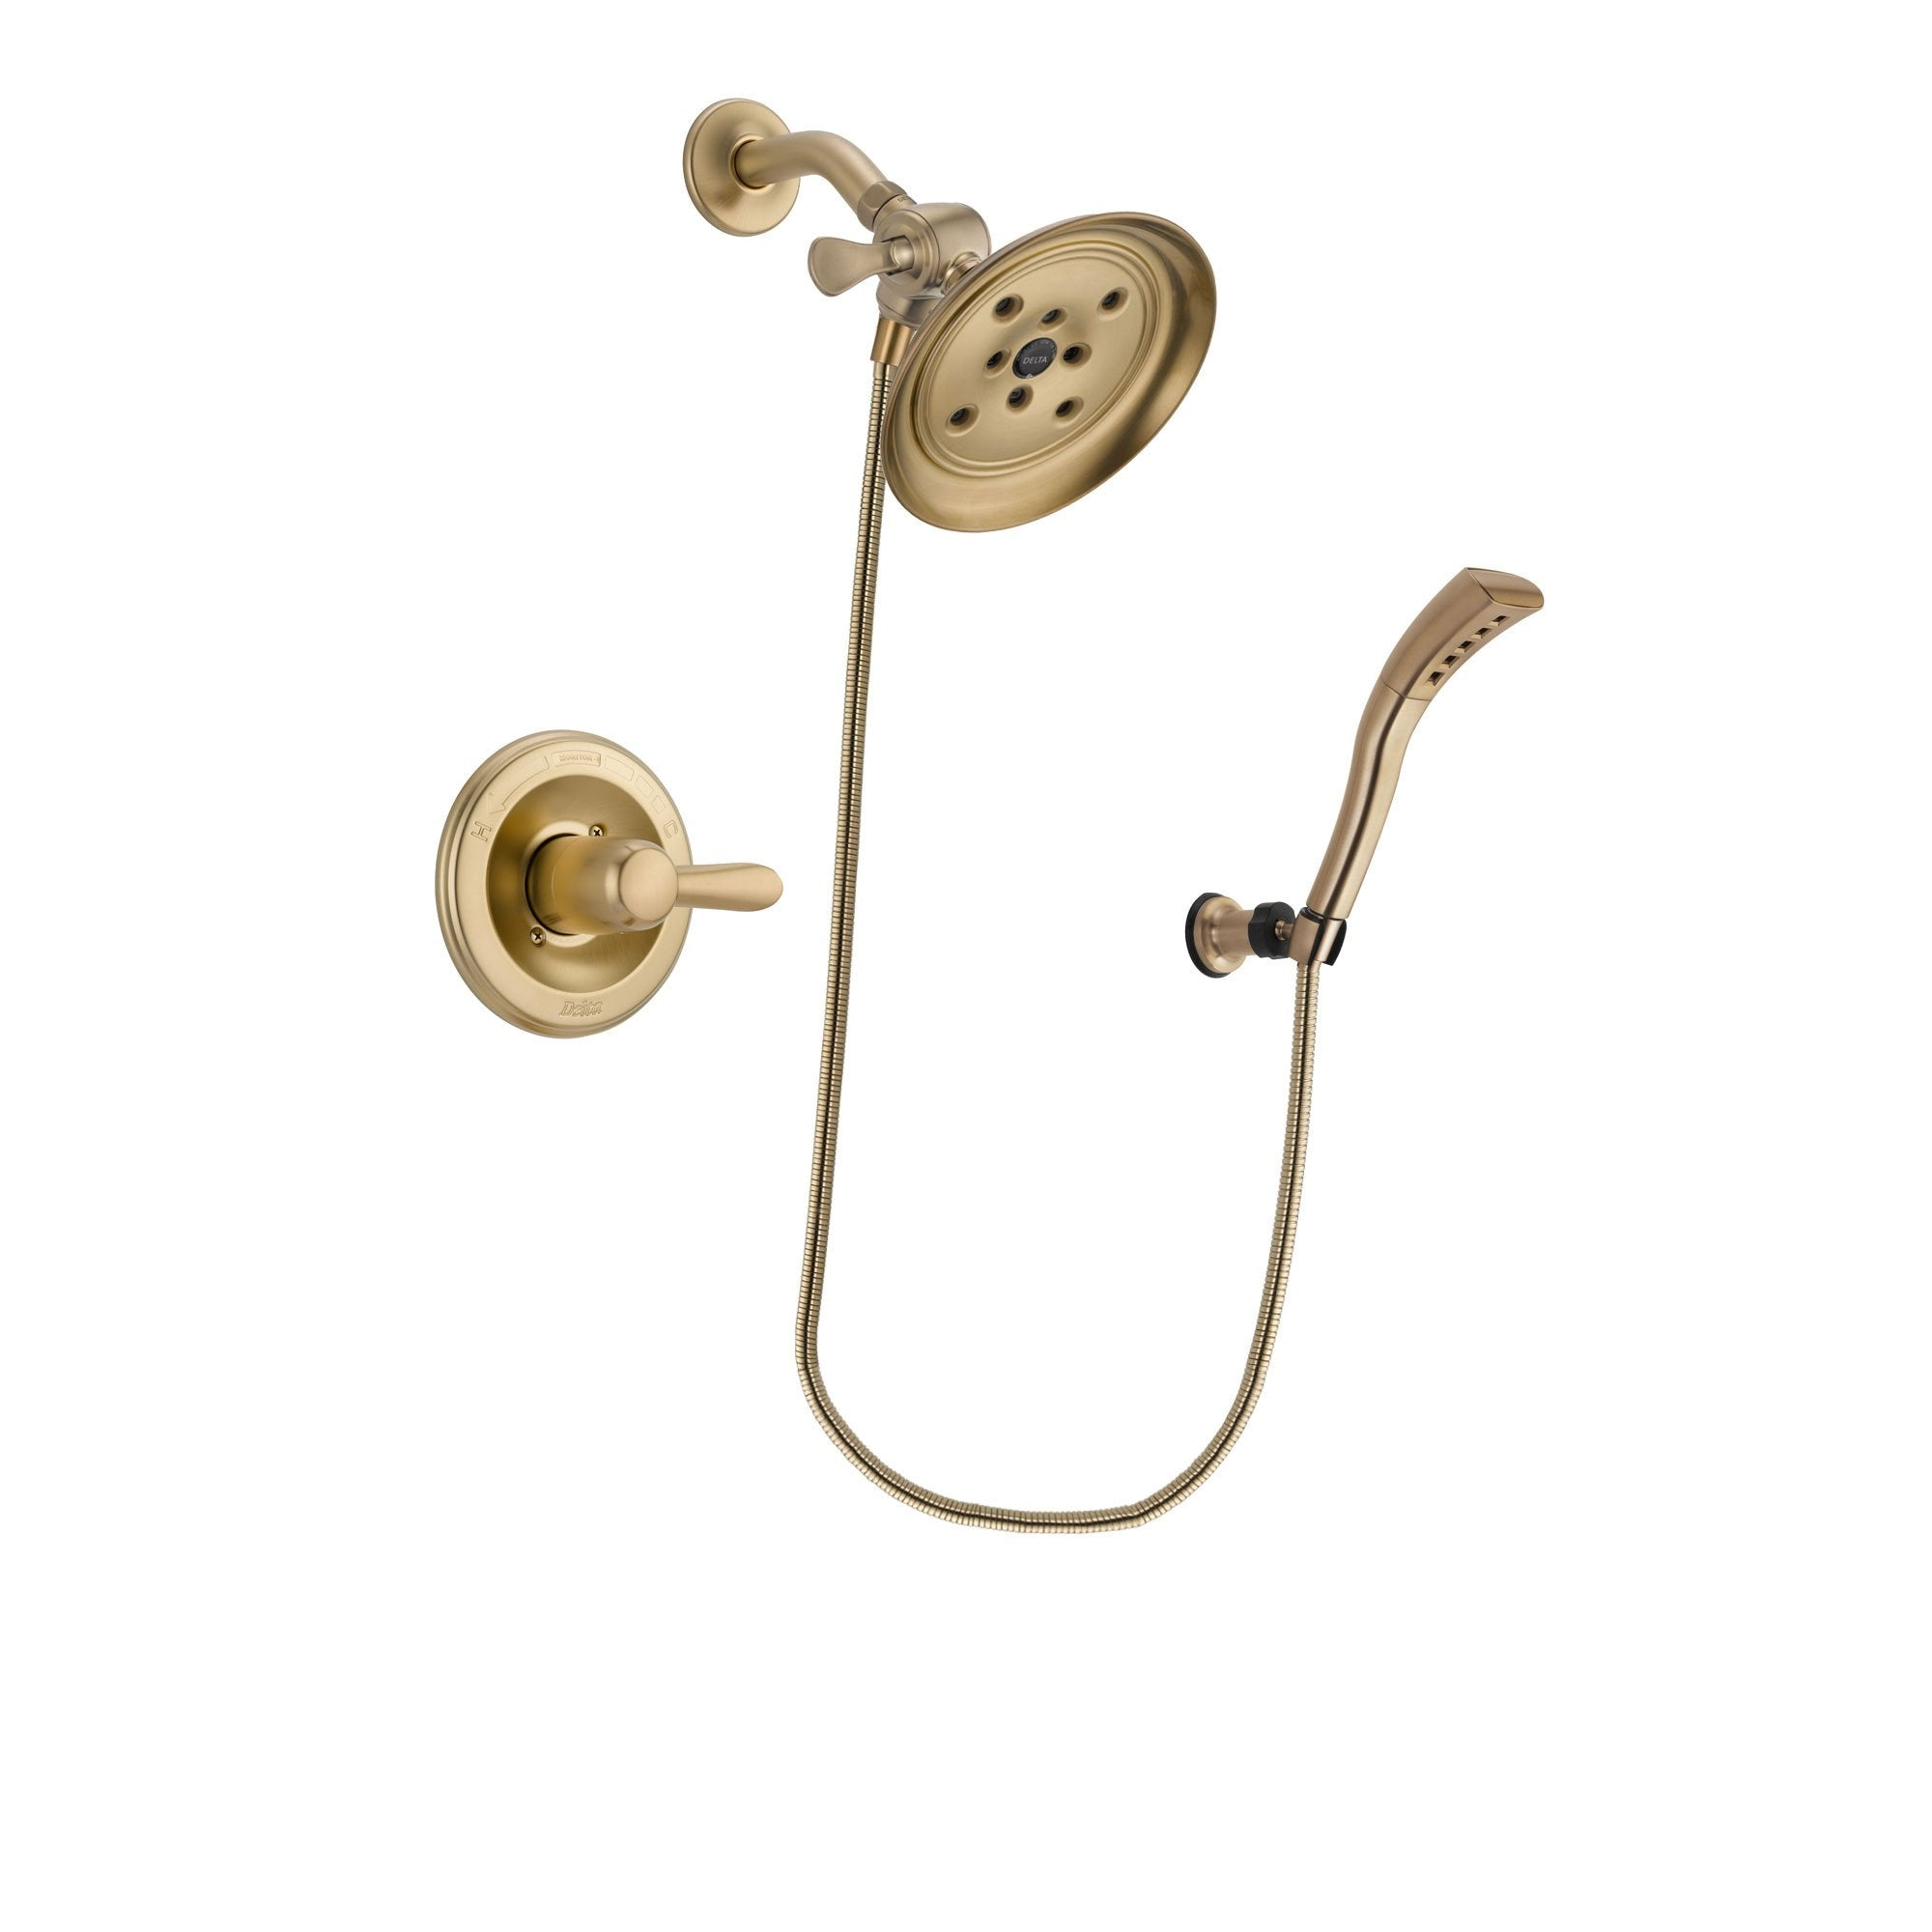 Delta Lahara Champagne Bronze Finish Shower Faucet System Package with Large Rain Shower Head and Modern Wall Mount Personal Handheld Shower Spray Includes Rough-in Valve DSP3690V